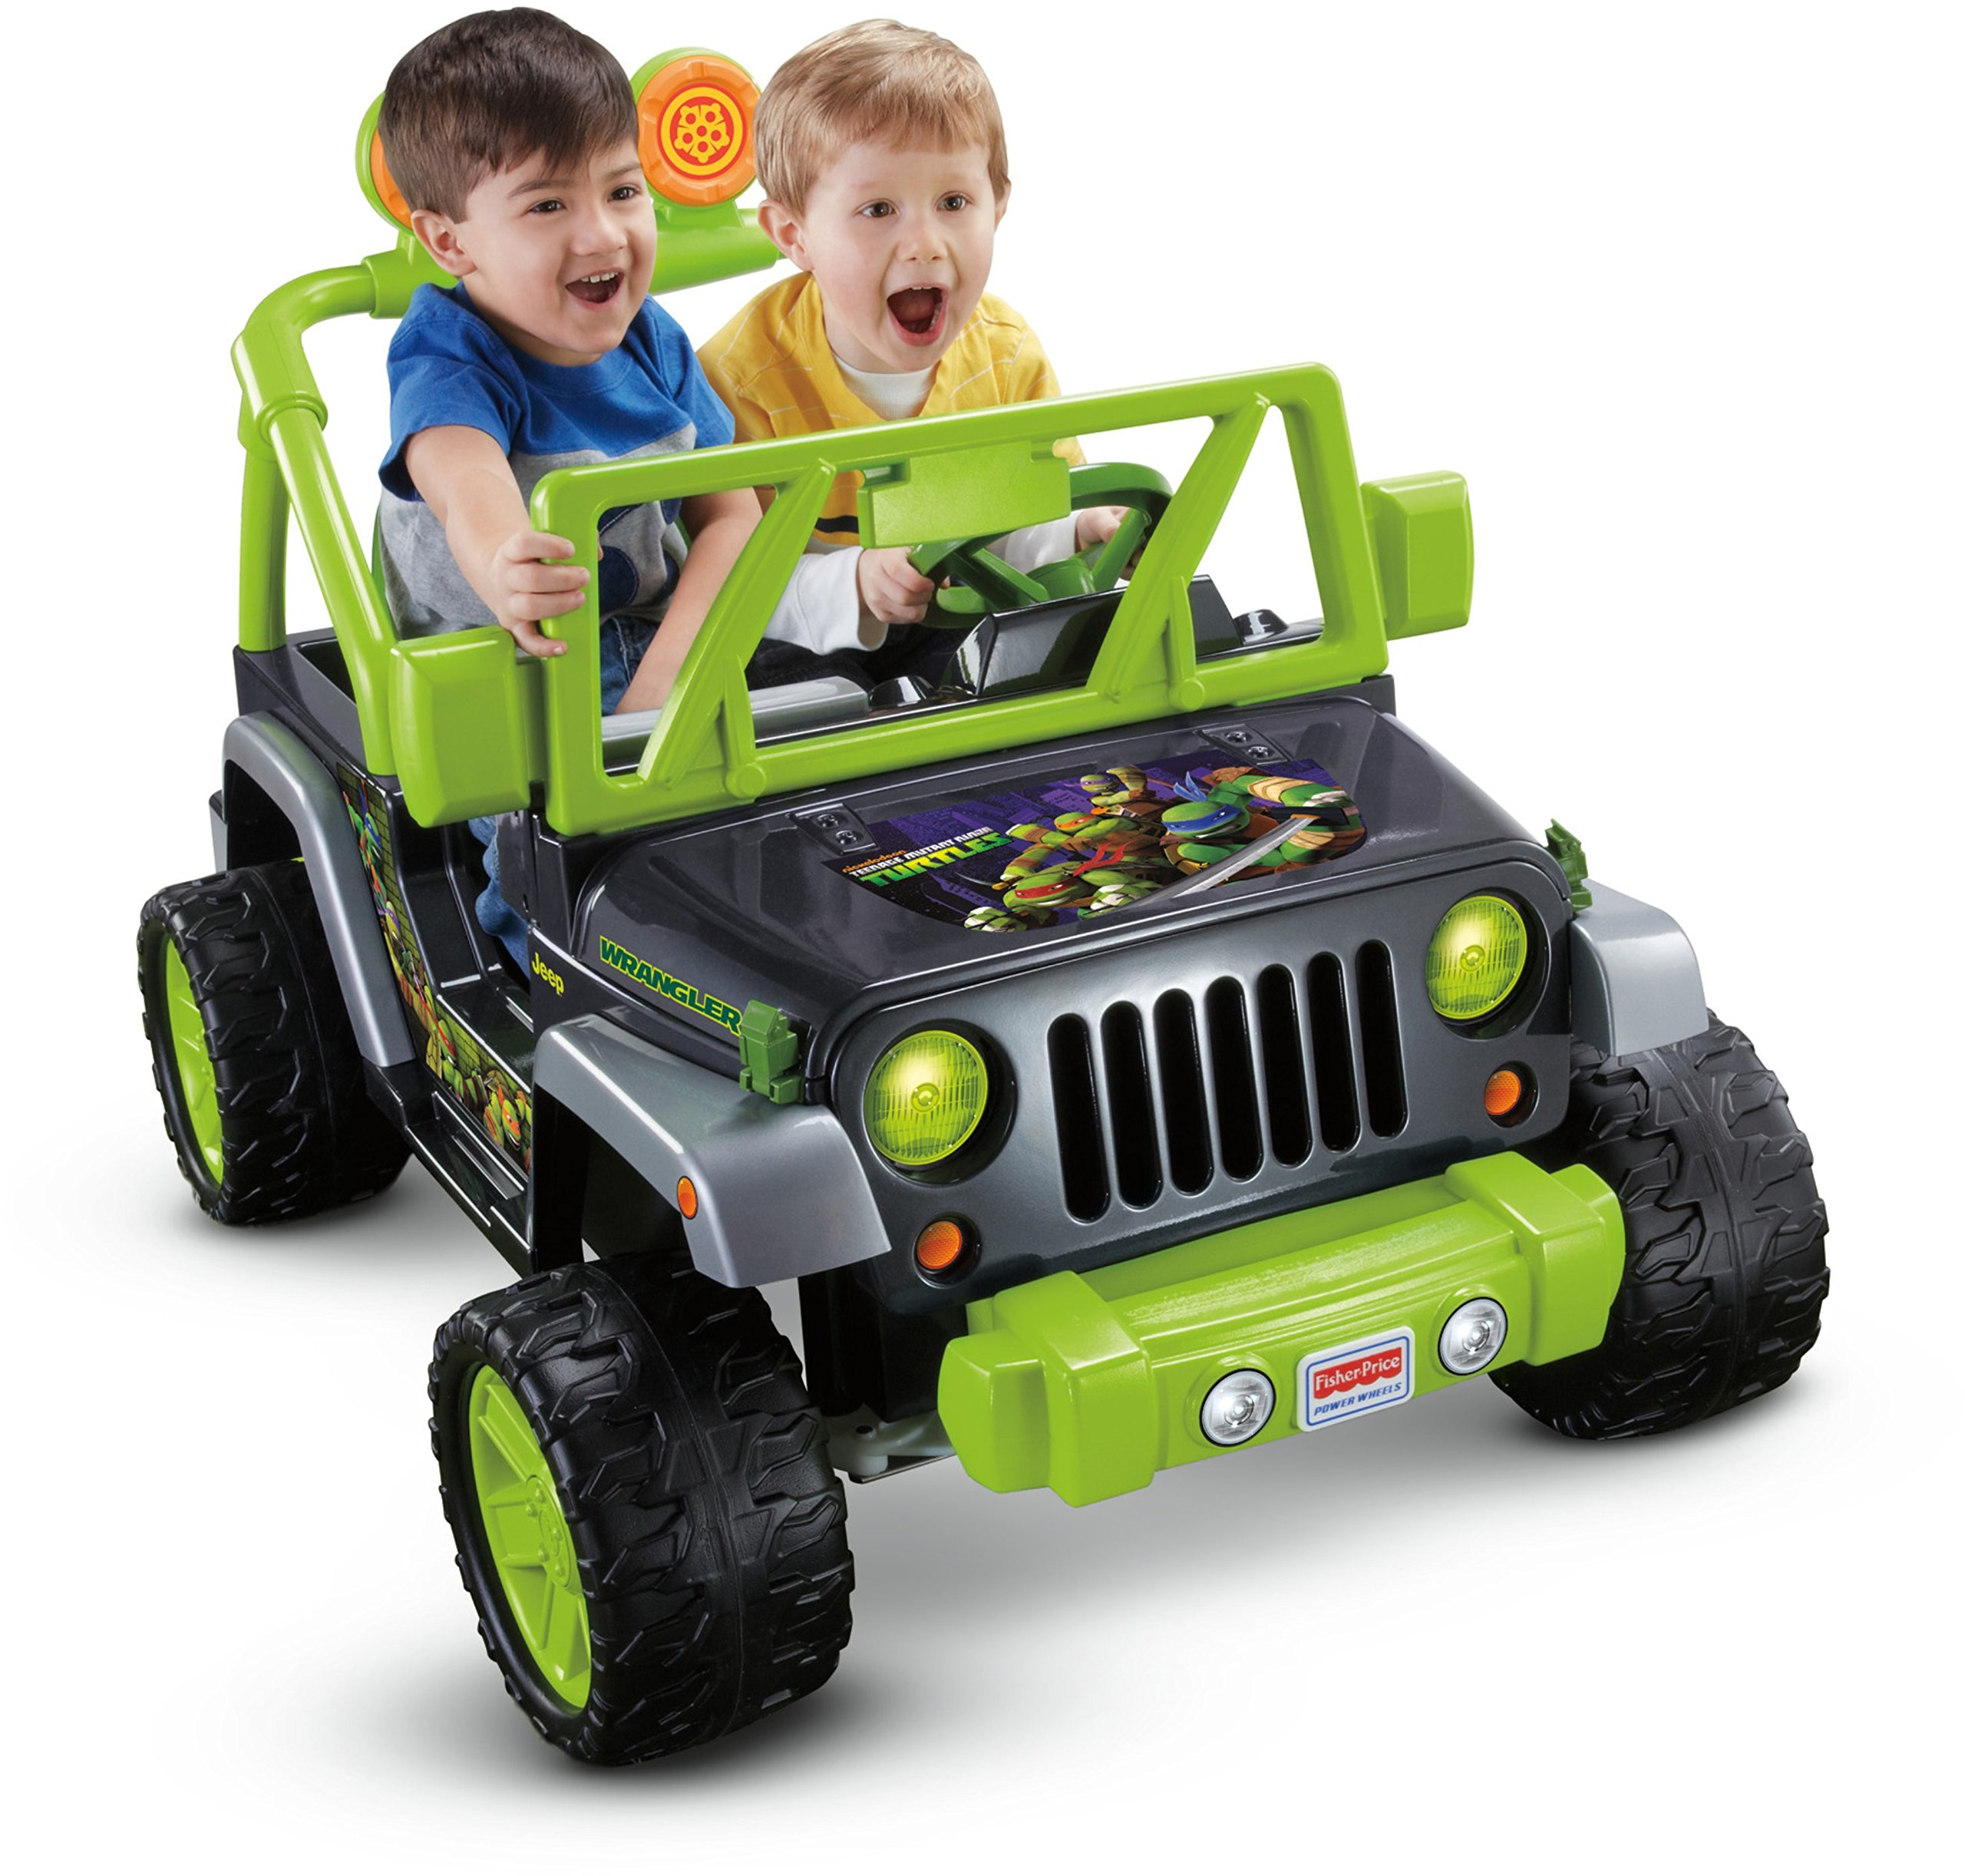 Power Wheels Teenage Mutant Ninja Turtle Jeep Wrangler by Power Wheels (Image #1)